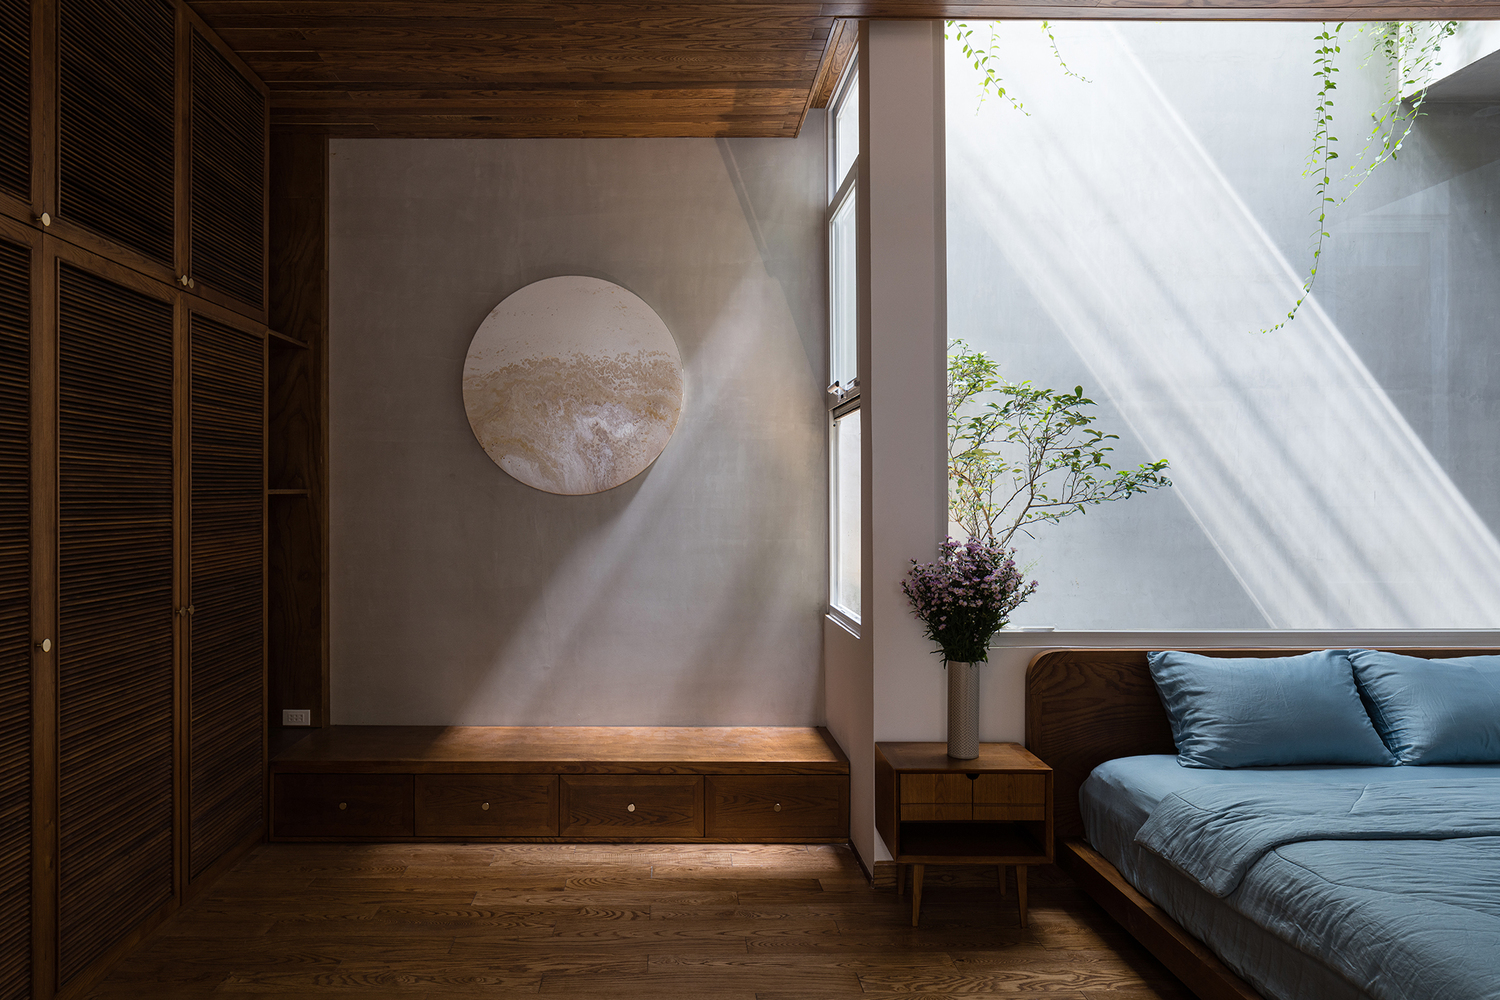 The bedrooms have a very zen and organic design, with lots of wood and pleasant lighting throughout